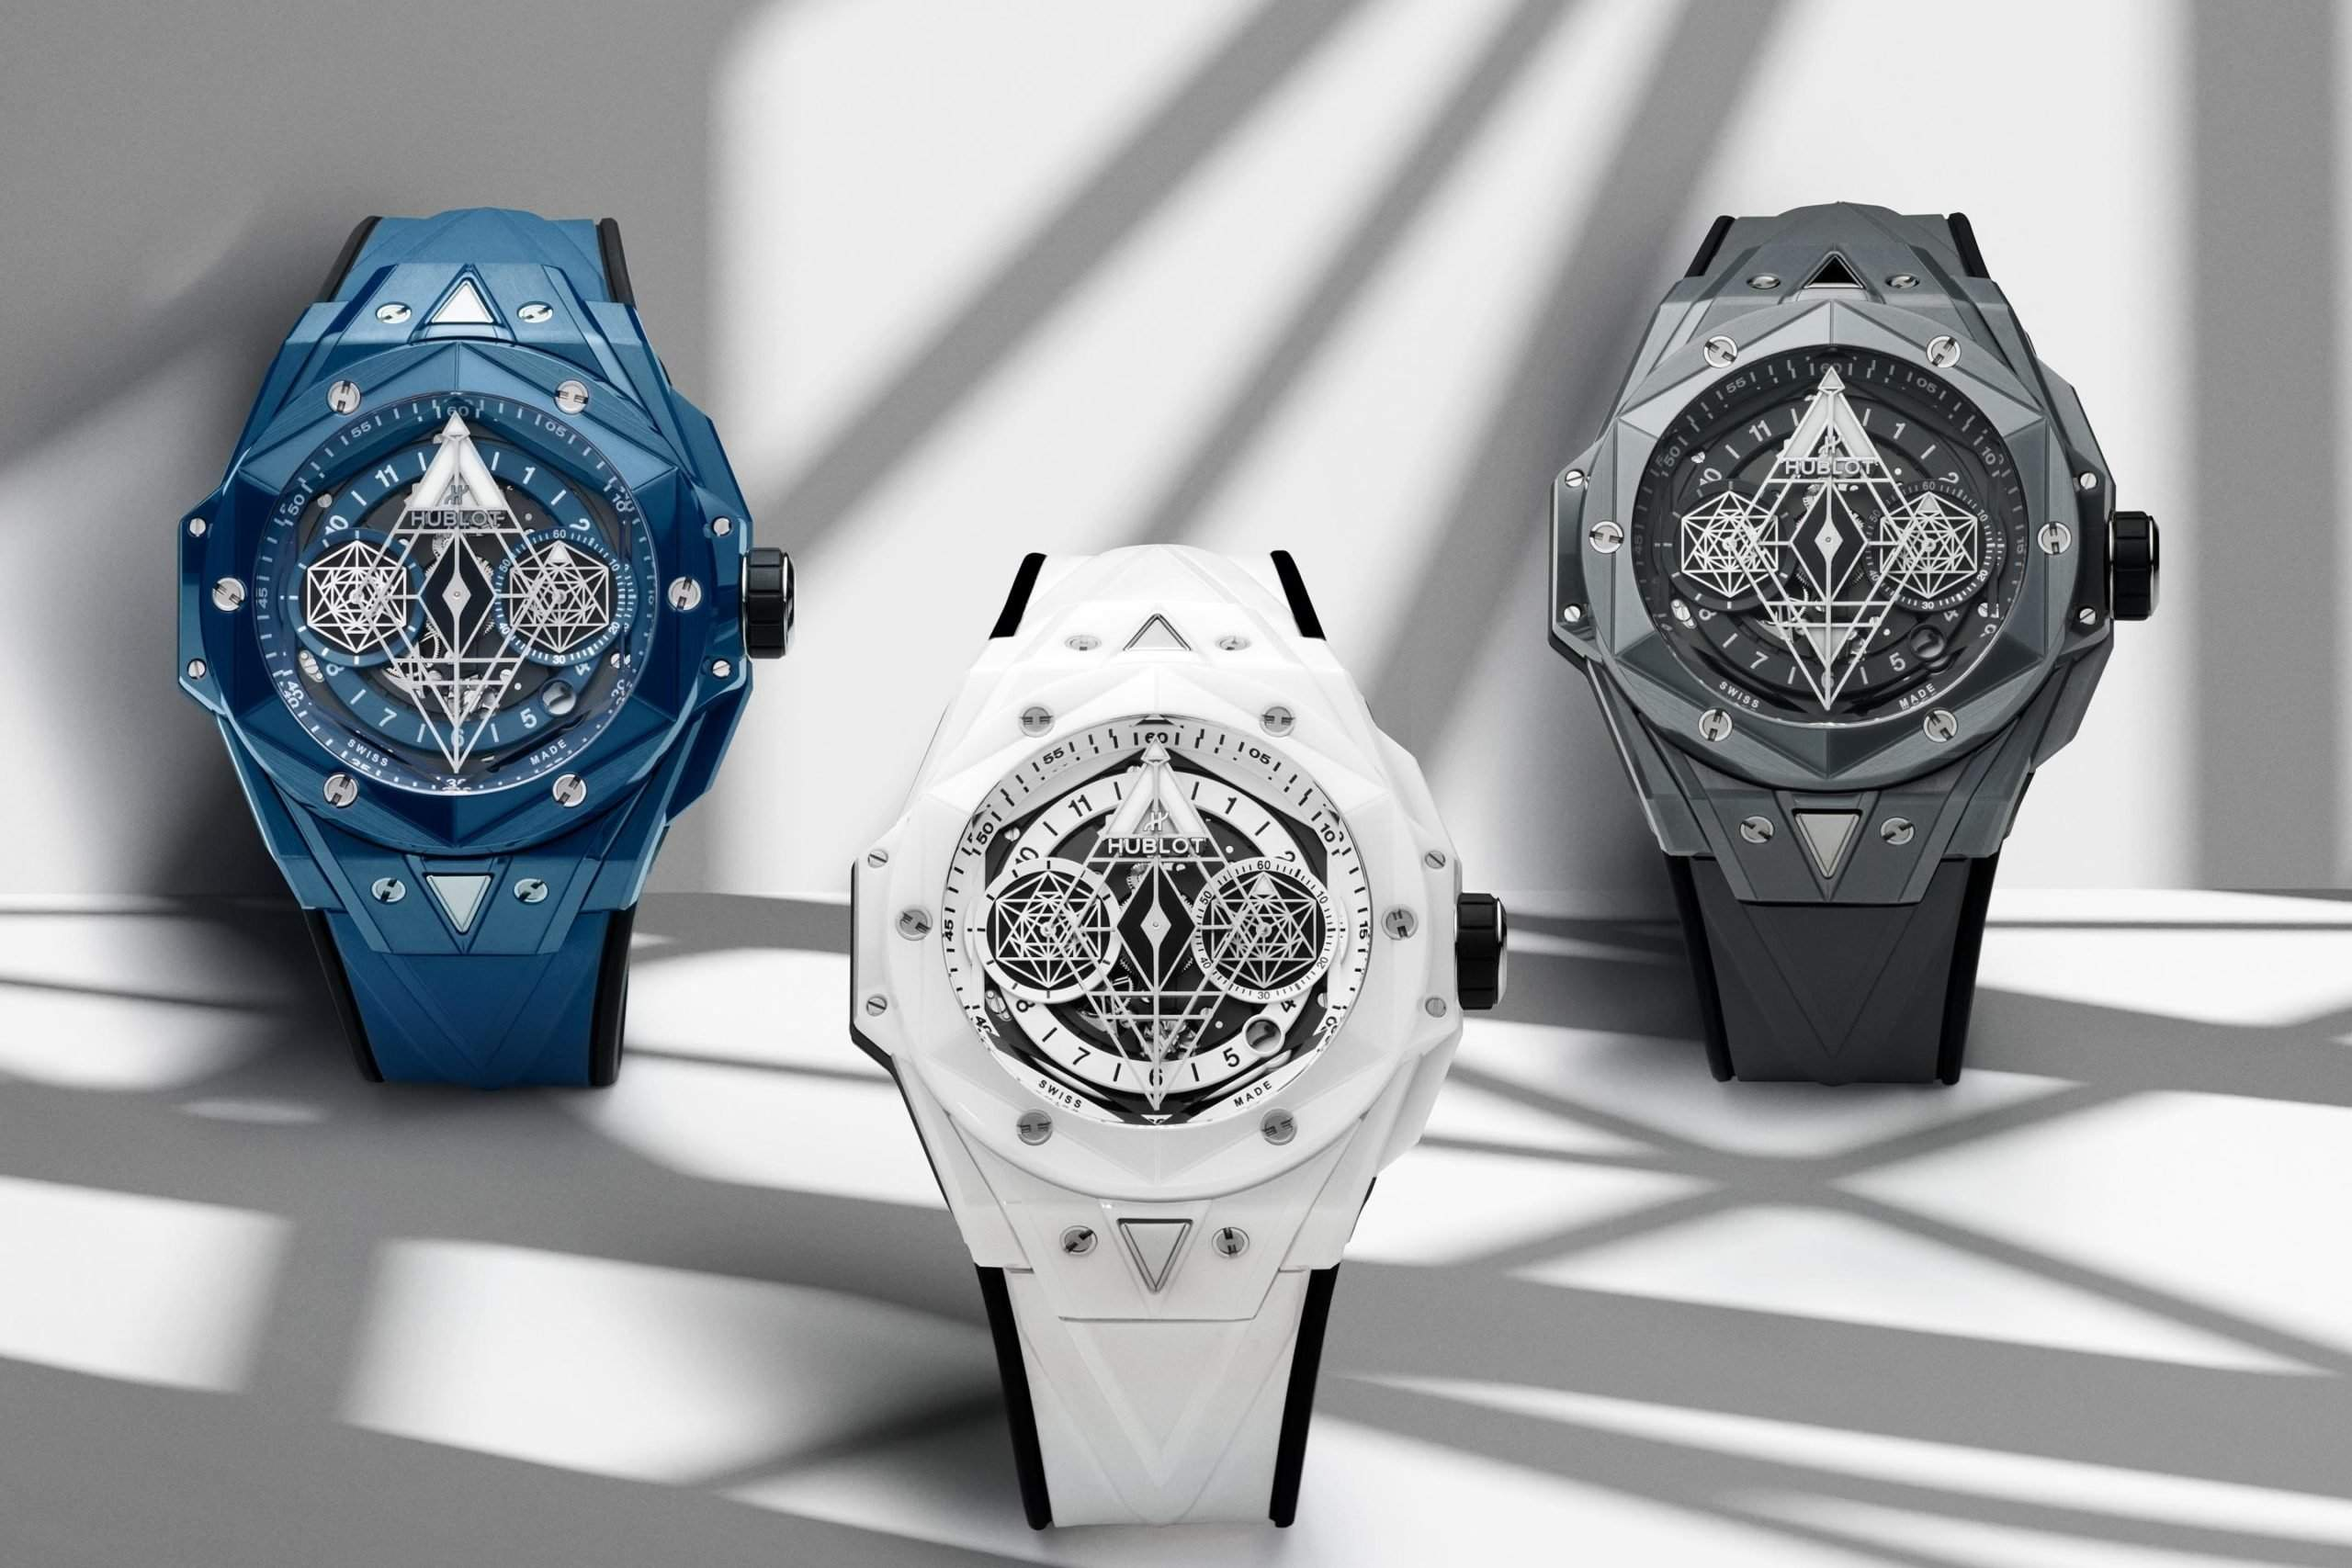 Hublot will produce just 200 copies of each version.